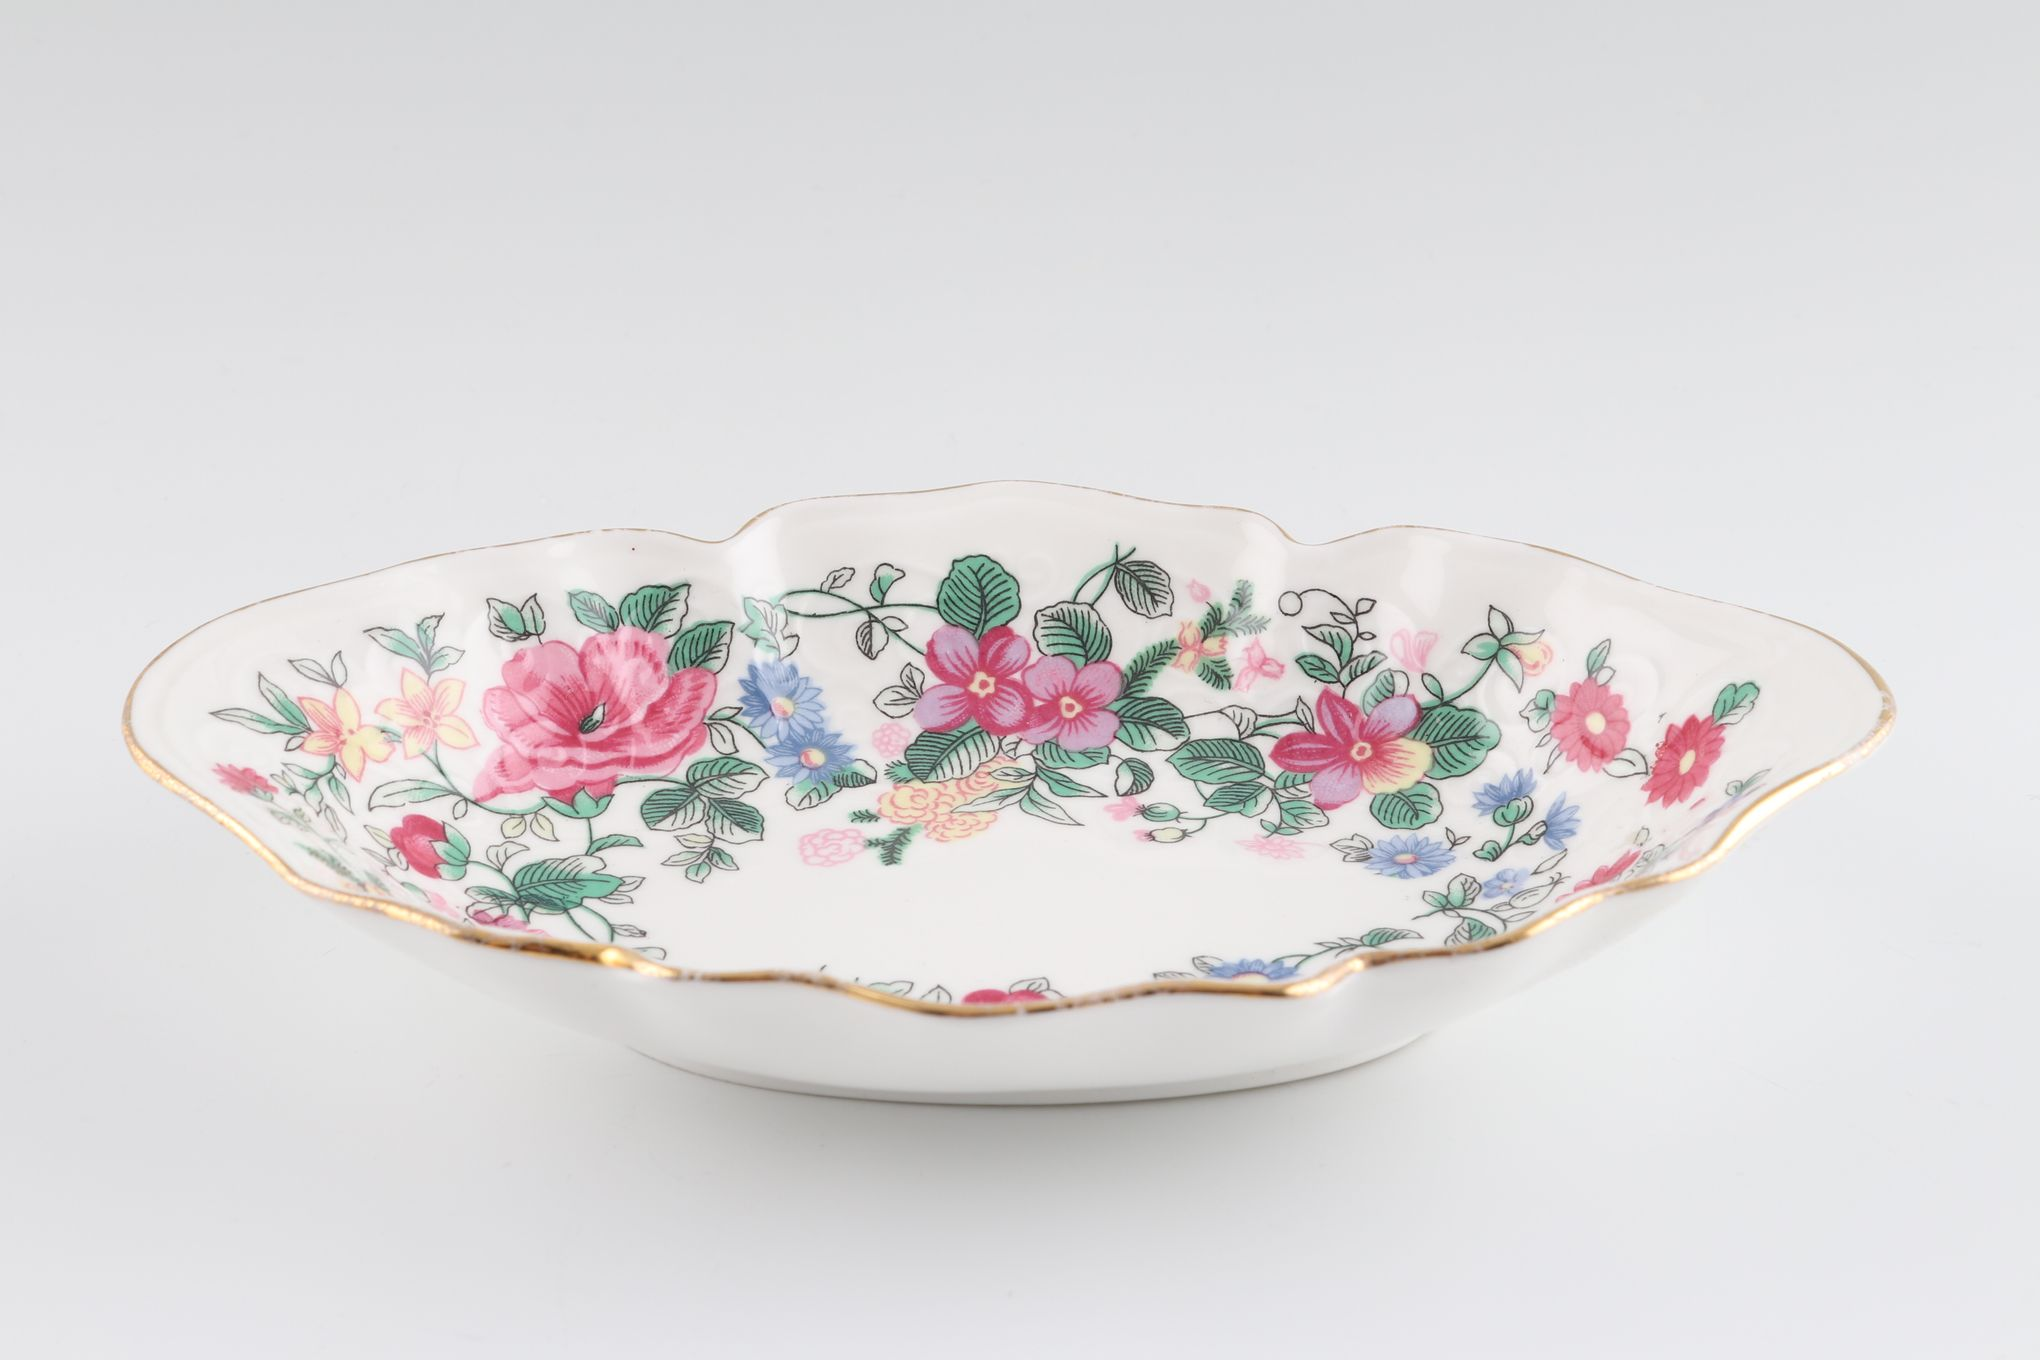 """Crown Staffordshire Thousand Flowers Serving Dish Oval - Fluted 6 3/4 x 4 1/2"""" thumb 1"""